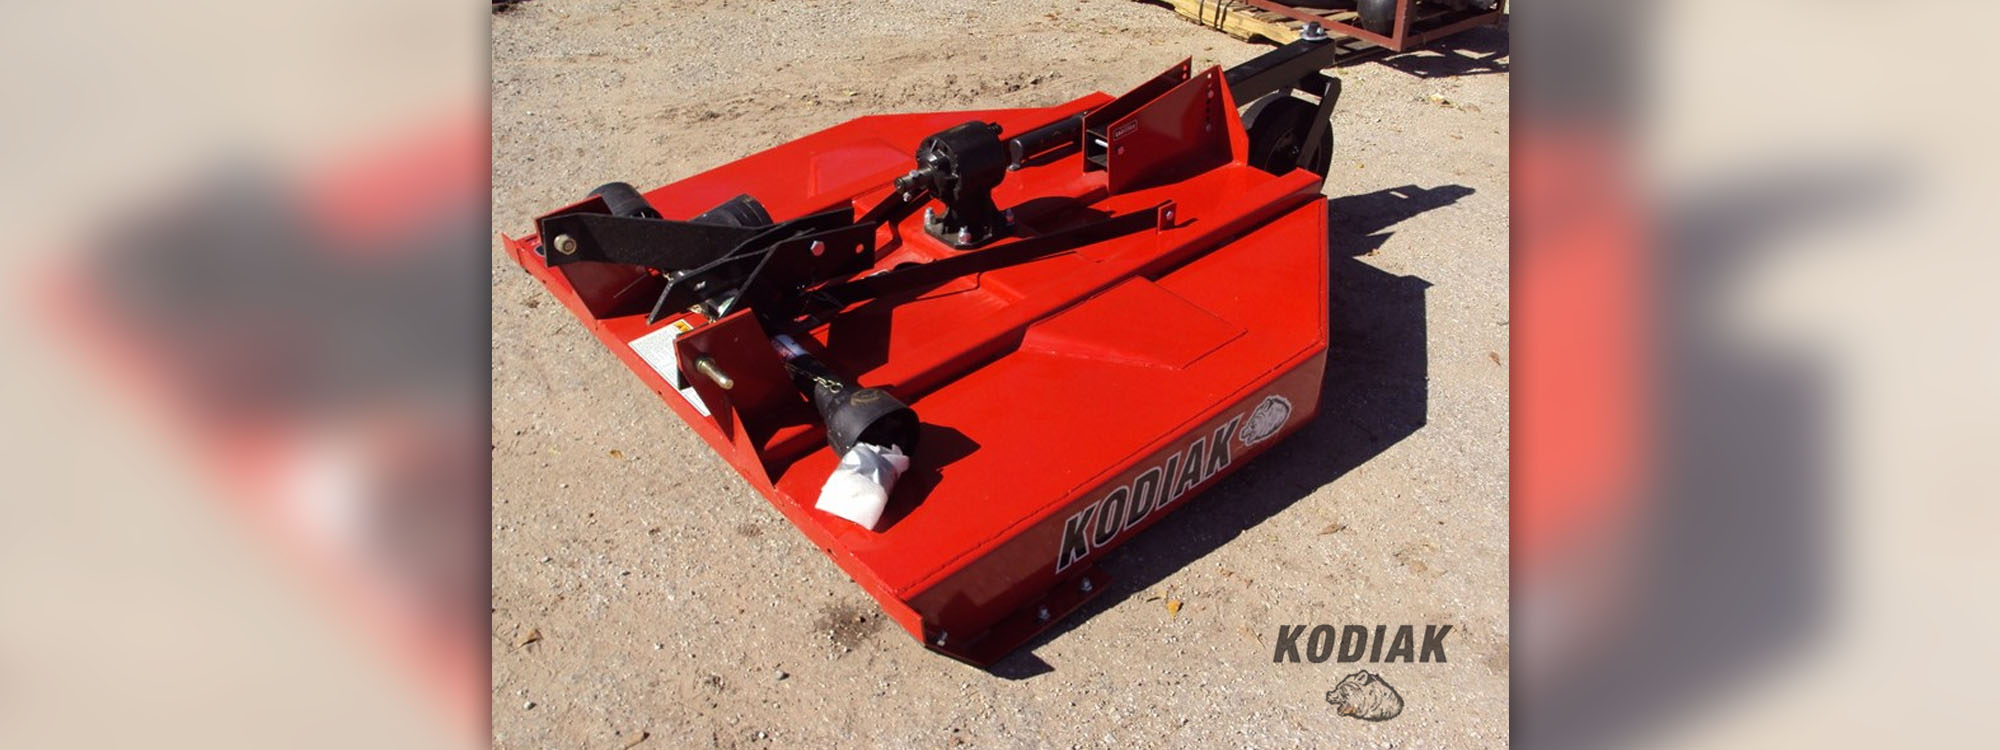 Windstar Equipment carries Kodiak equipment and much more!